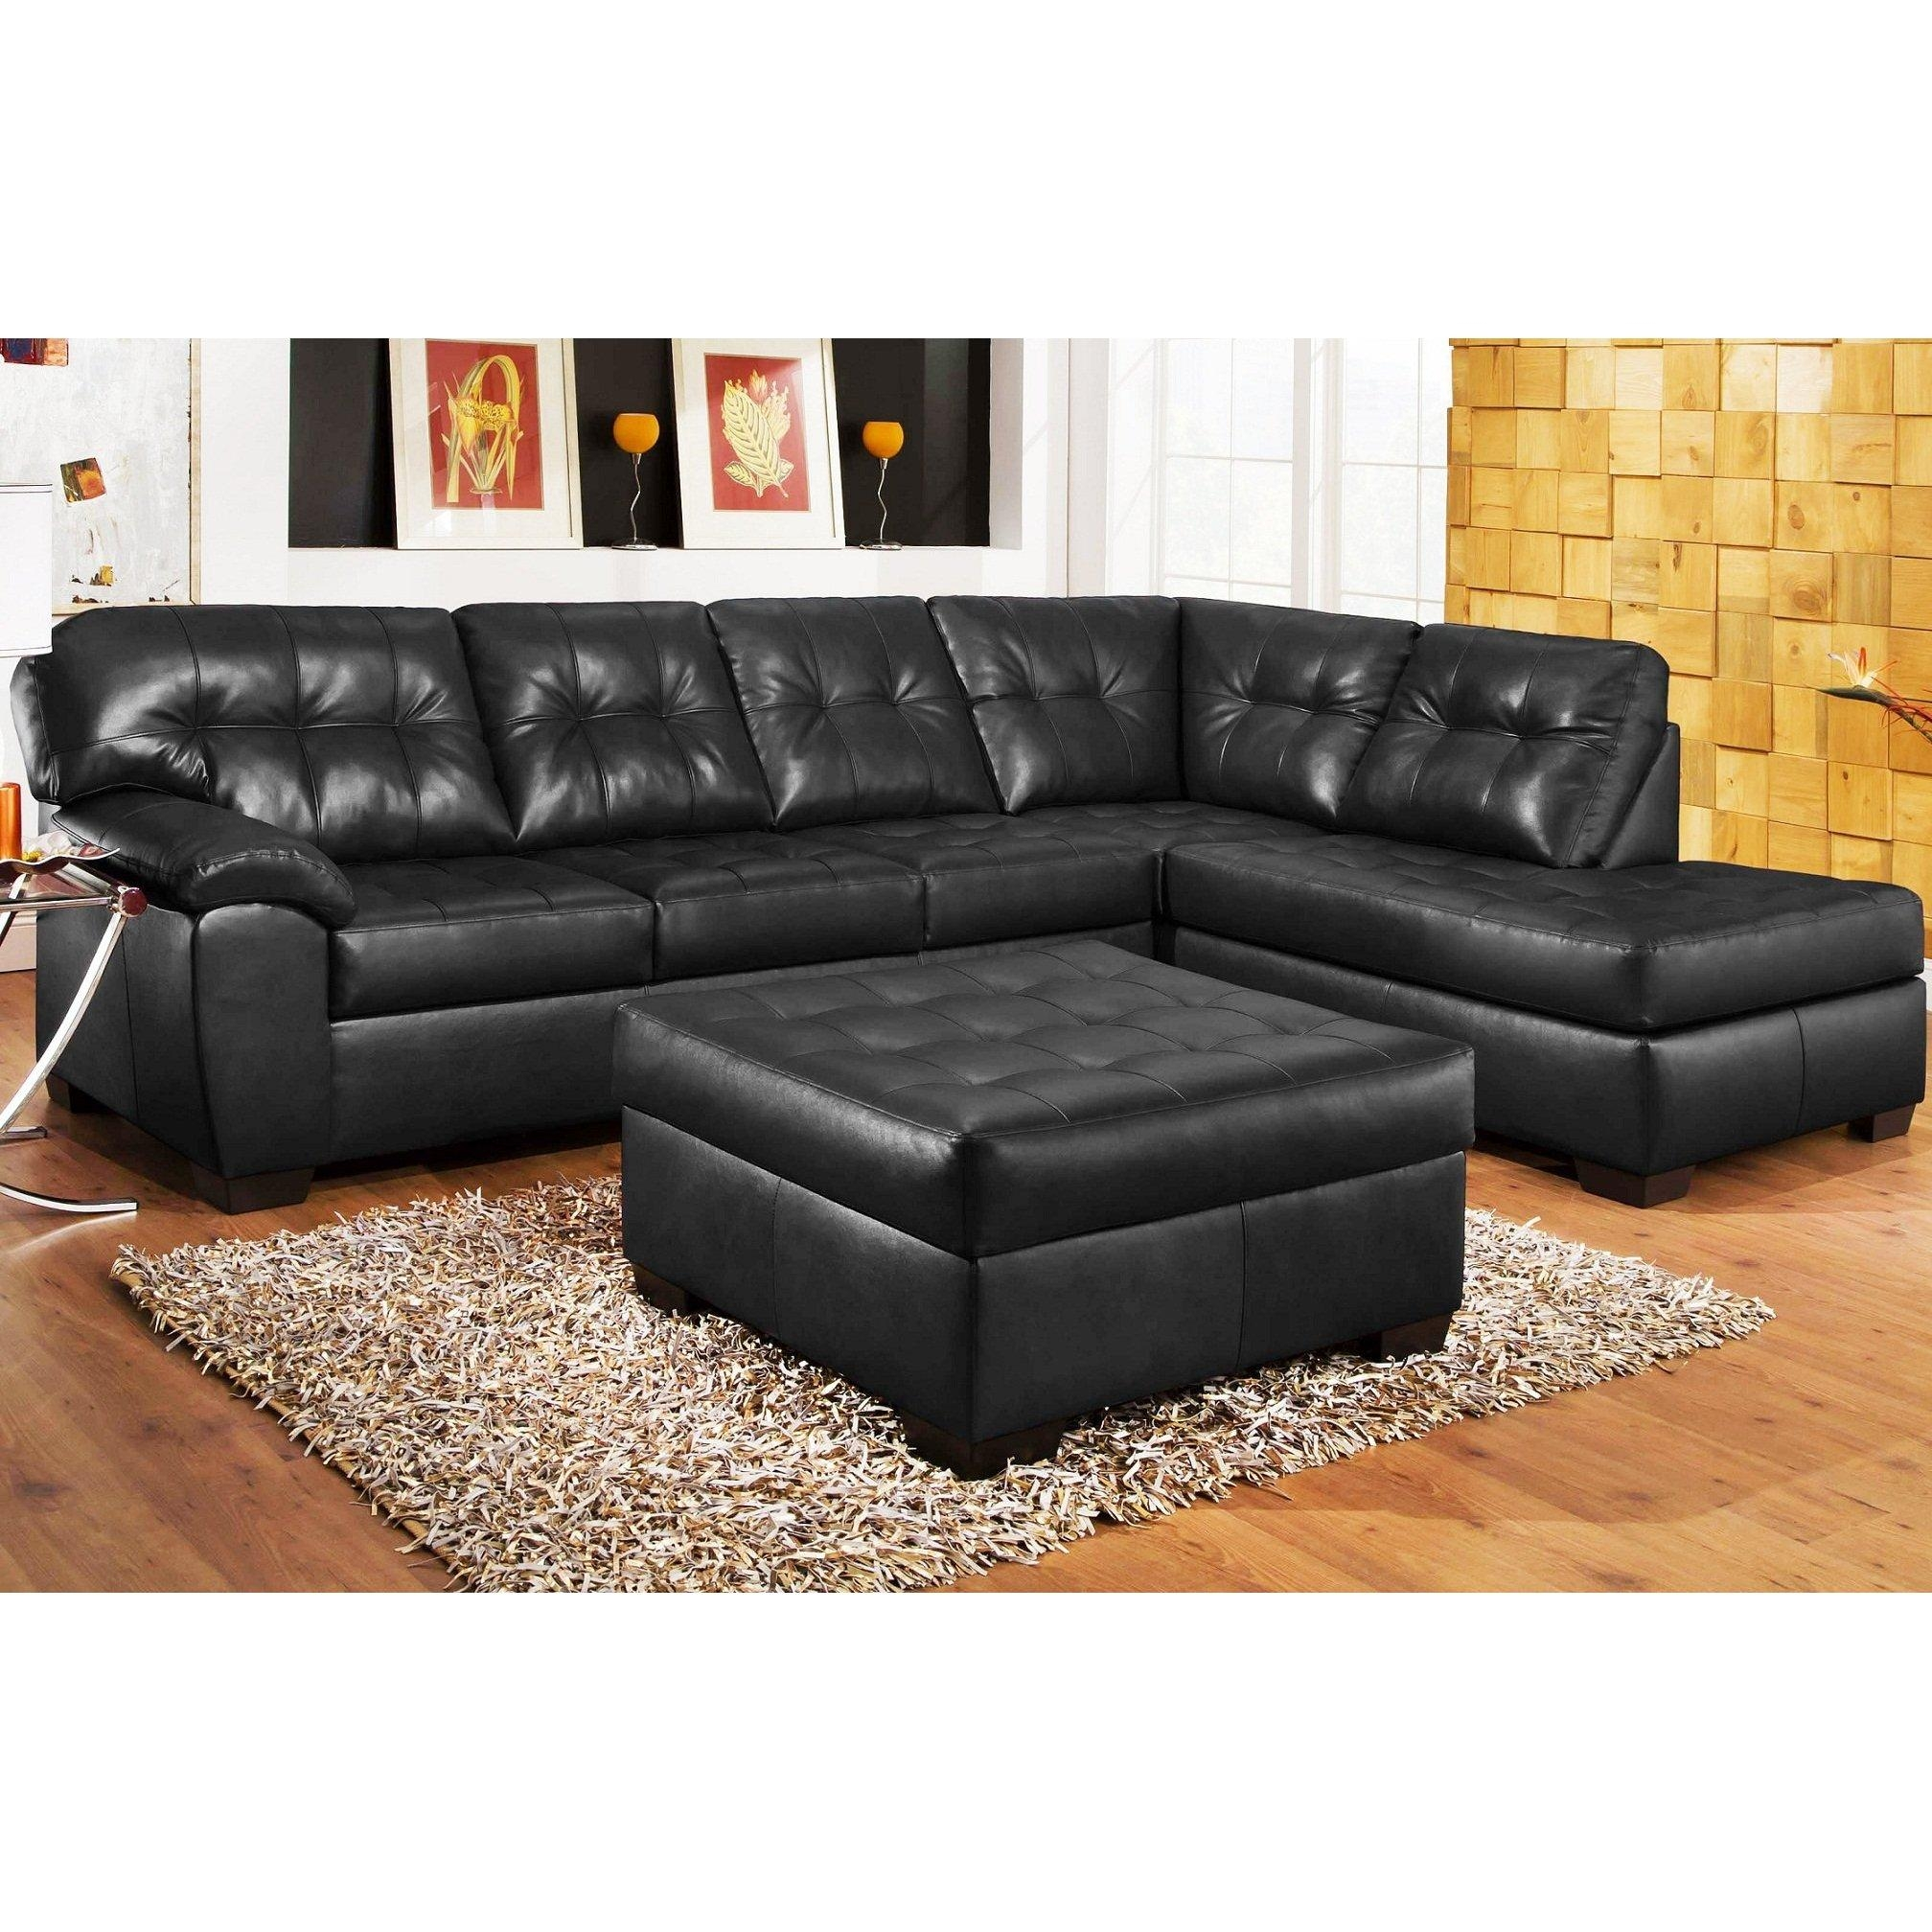 Sofas : Awesome Small Grey Sectional Small Leather Sectional With Black Leather Sectional Sleeper Sofas (Image 17 of 21)